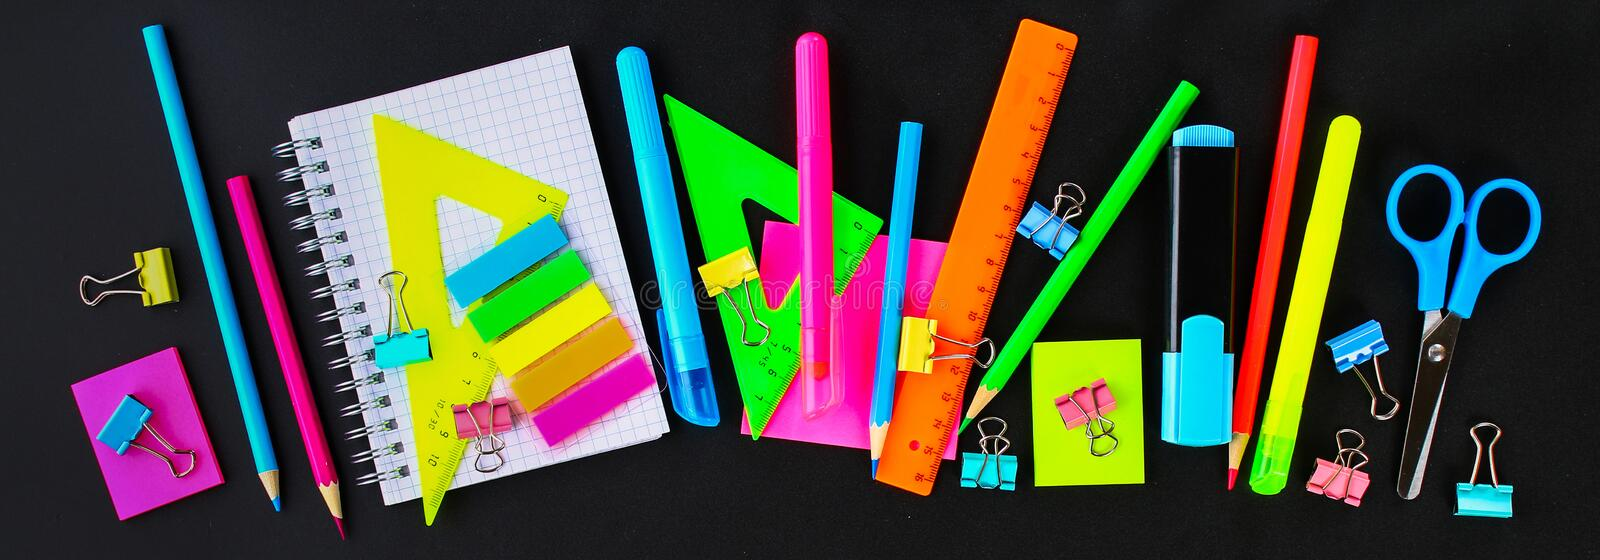 School supplies on blackboard background ready for your design. Flat lay. Top view. School supplies on blackboard background ready for your design. Flat lay royalty free stock images